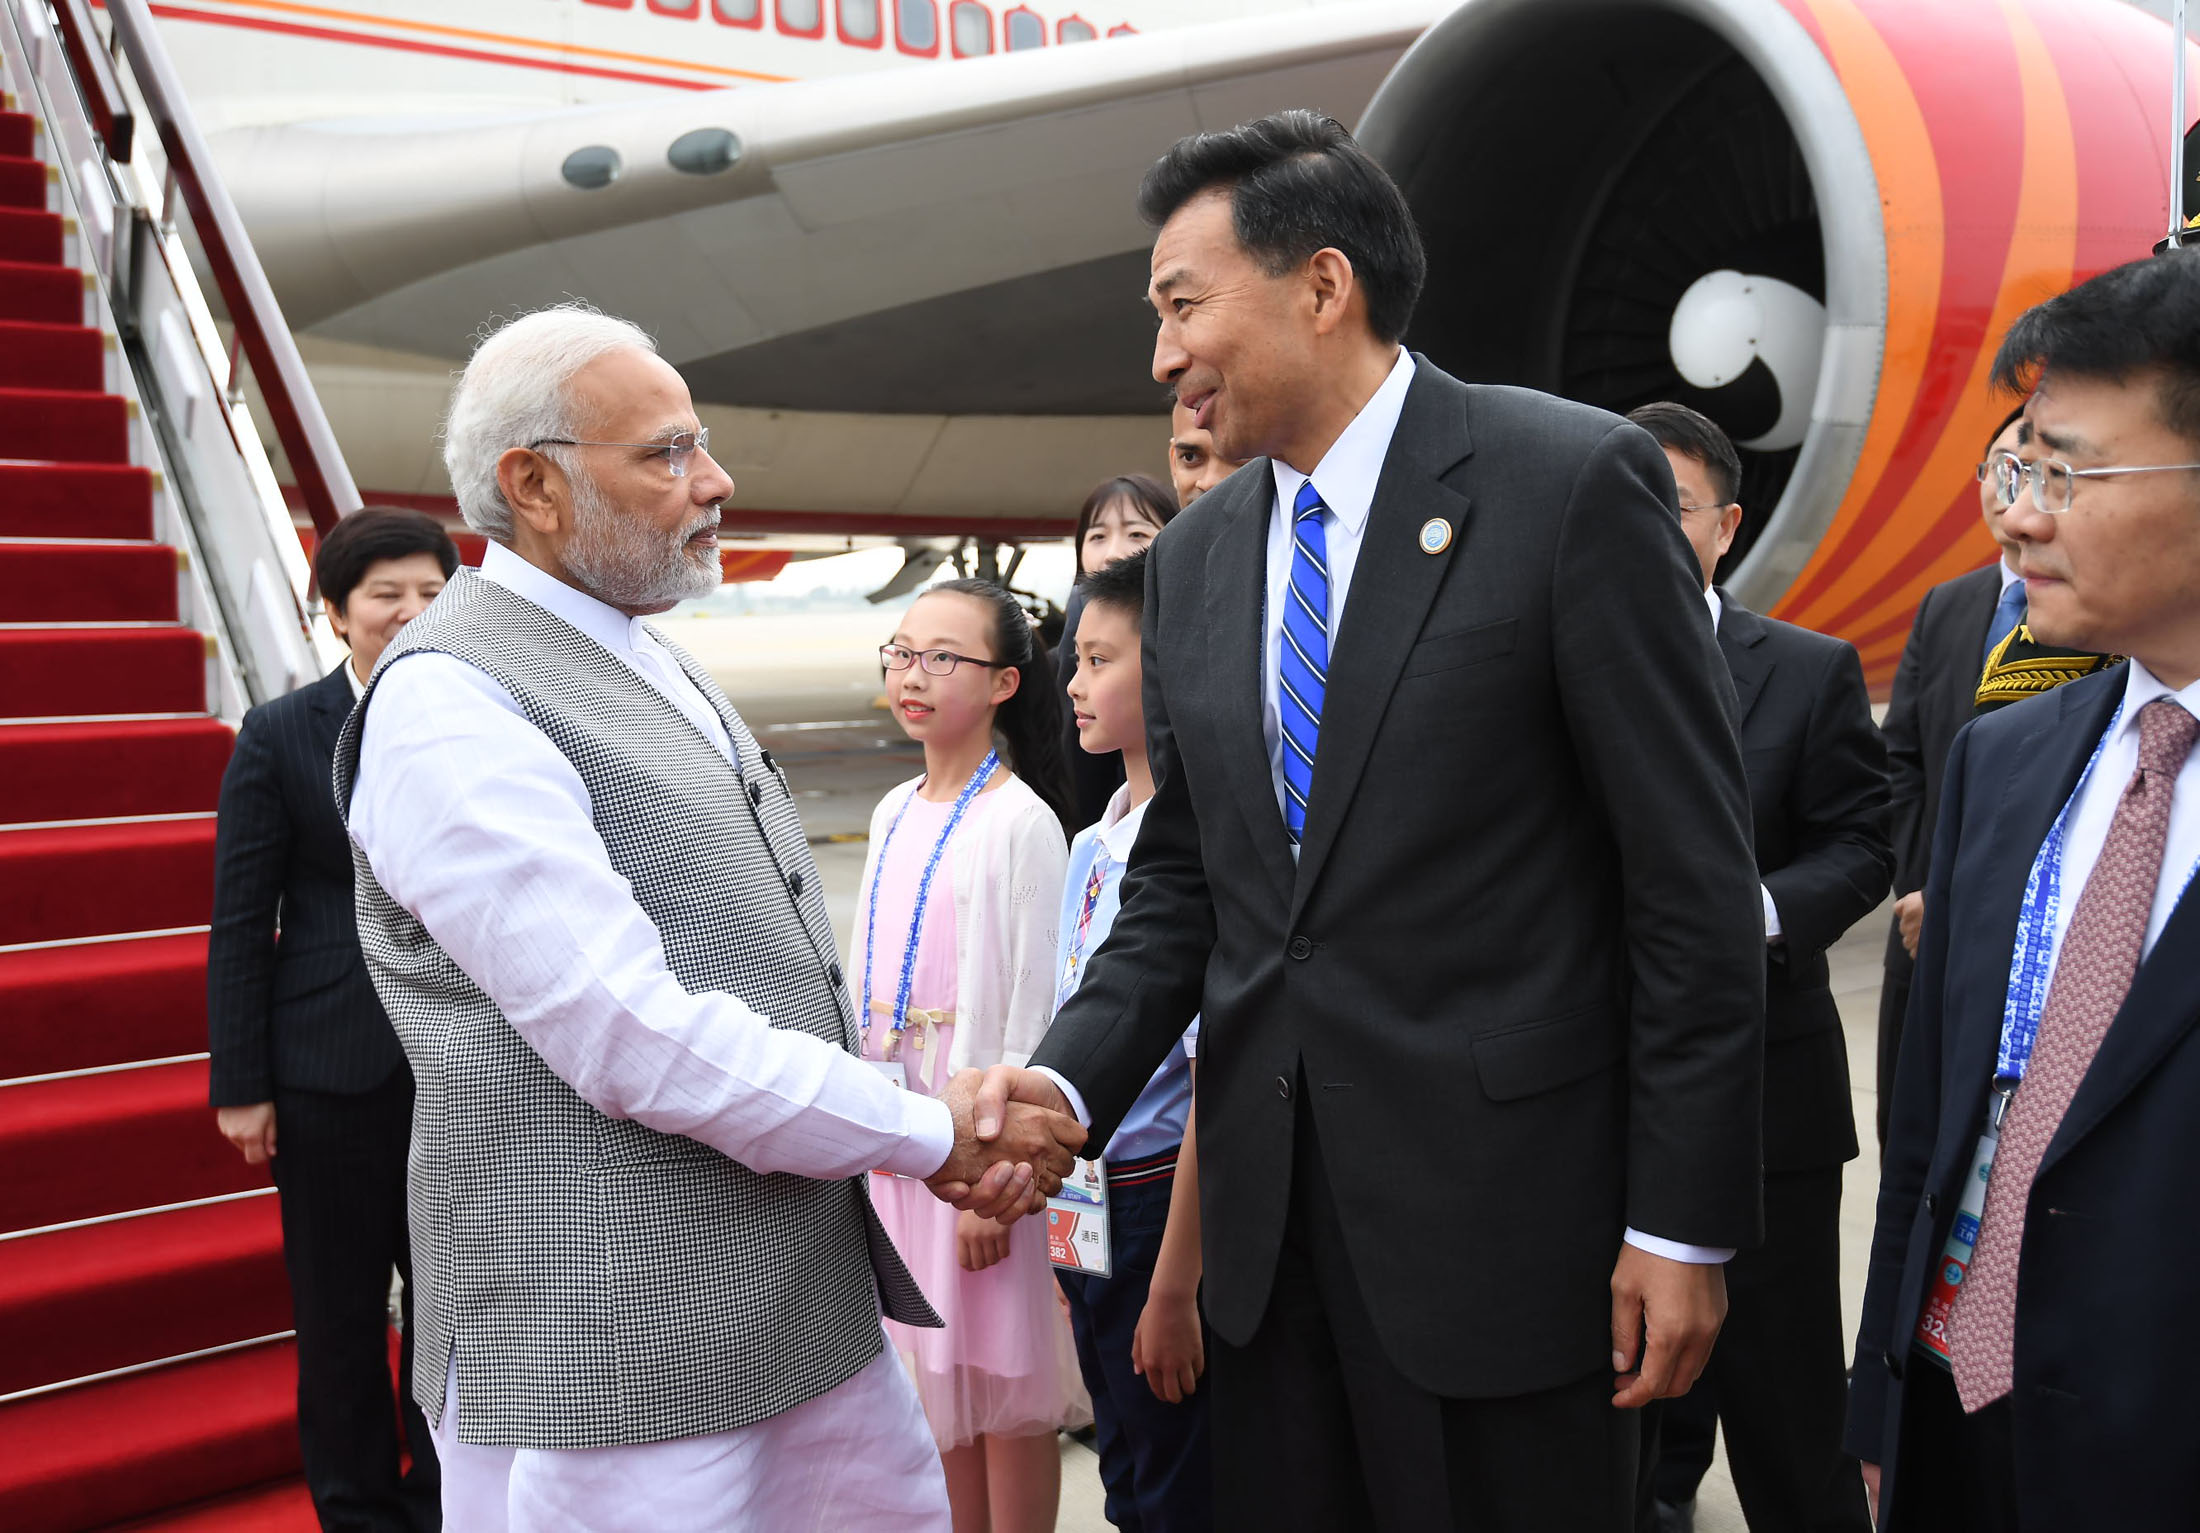 The Prime Minister, Shri Narendra Modi being welcomed by the dignitaries, on his arrival at Qingdao, China, to attend the Shanghai Cooperation Organisation Summit, on June 09, 2018.